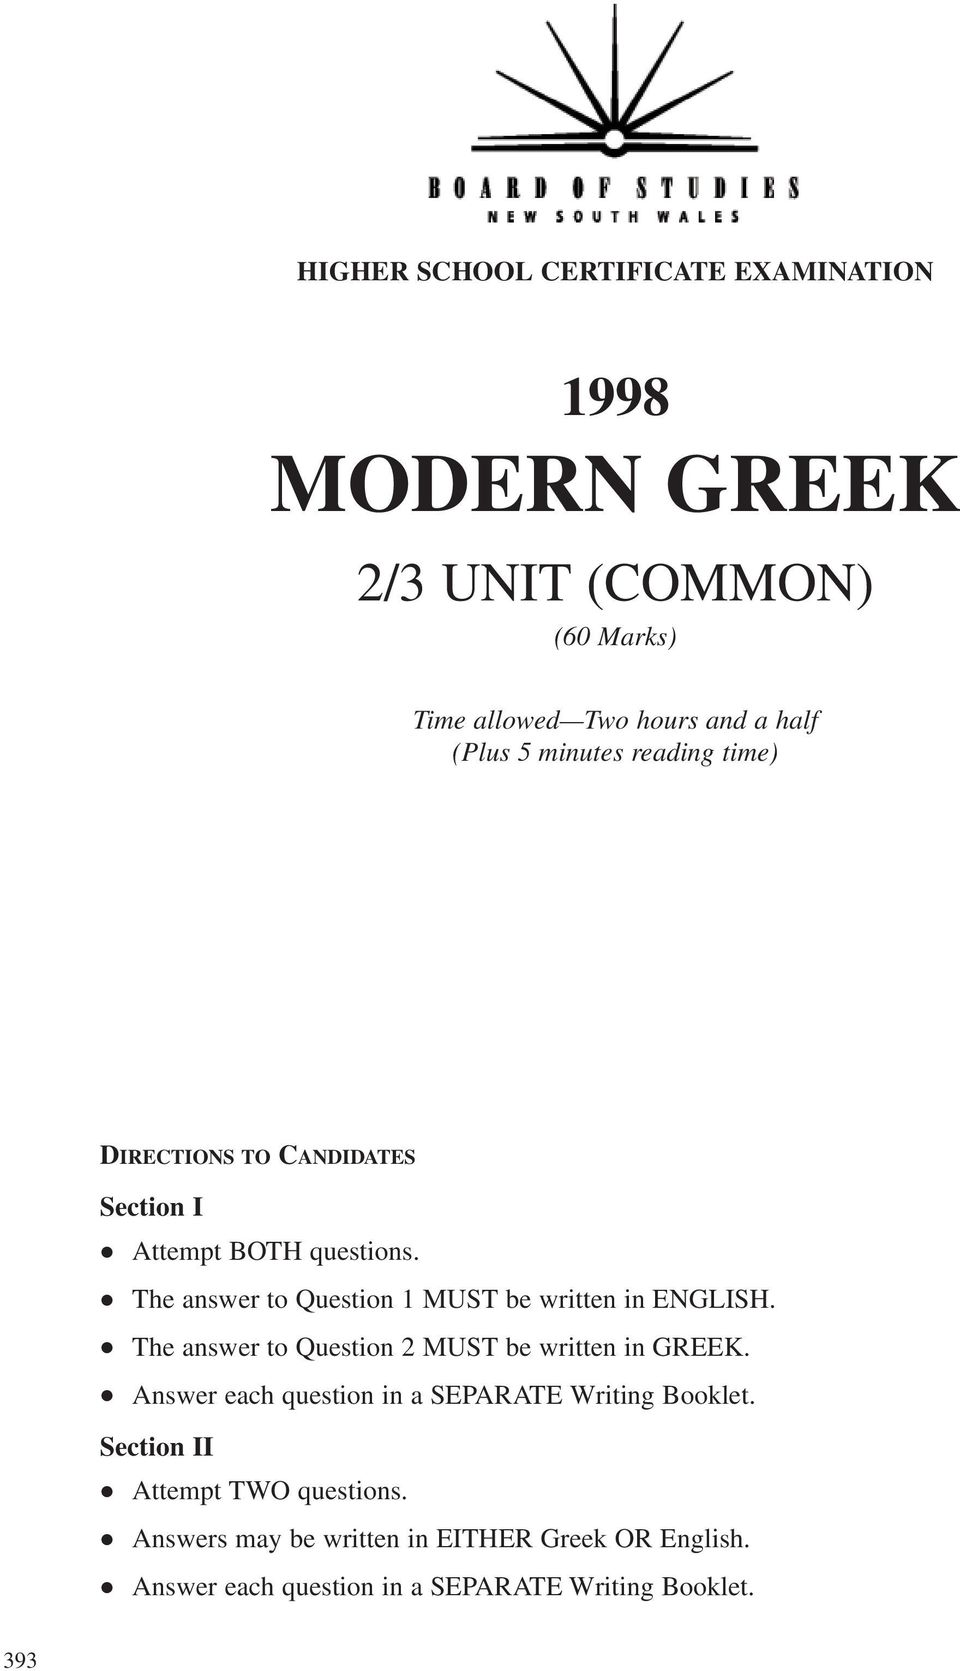 The answer to Question 1 MUST be written in ENGLISH. The answer to Question 2 MUST be written in GREEK.